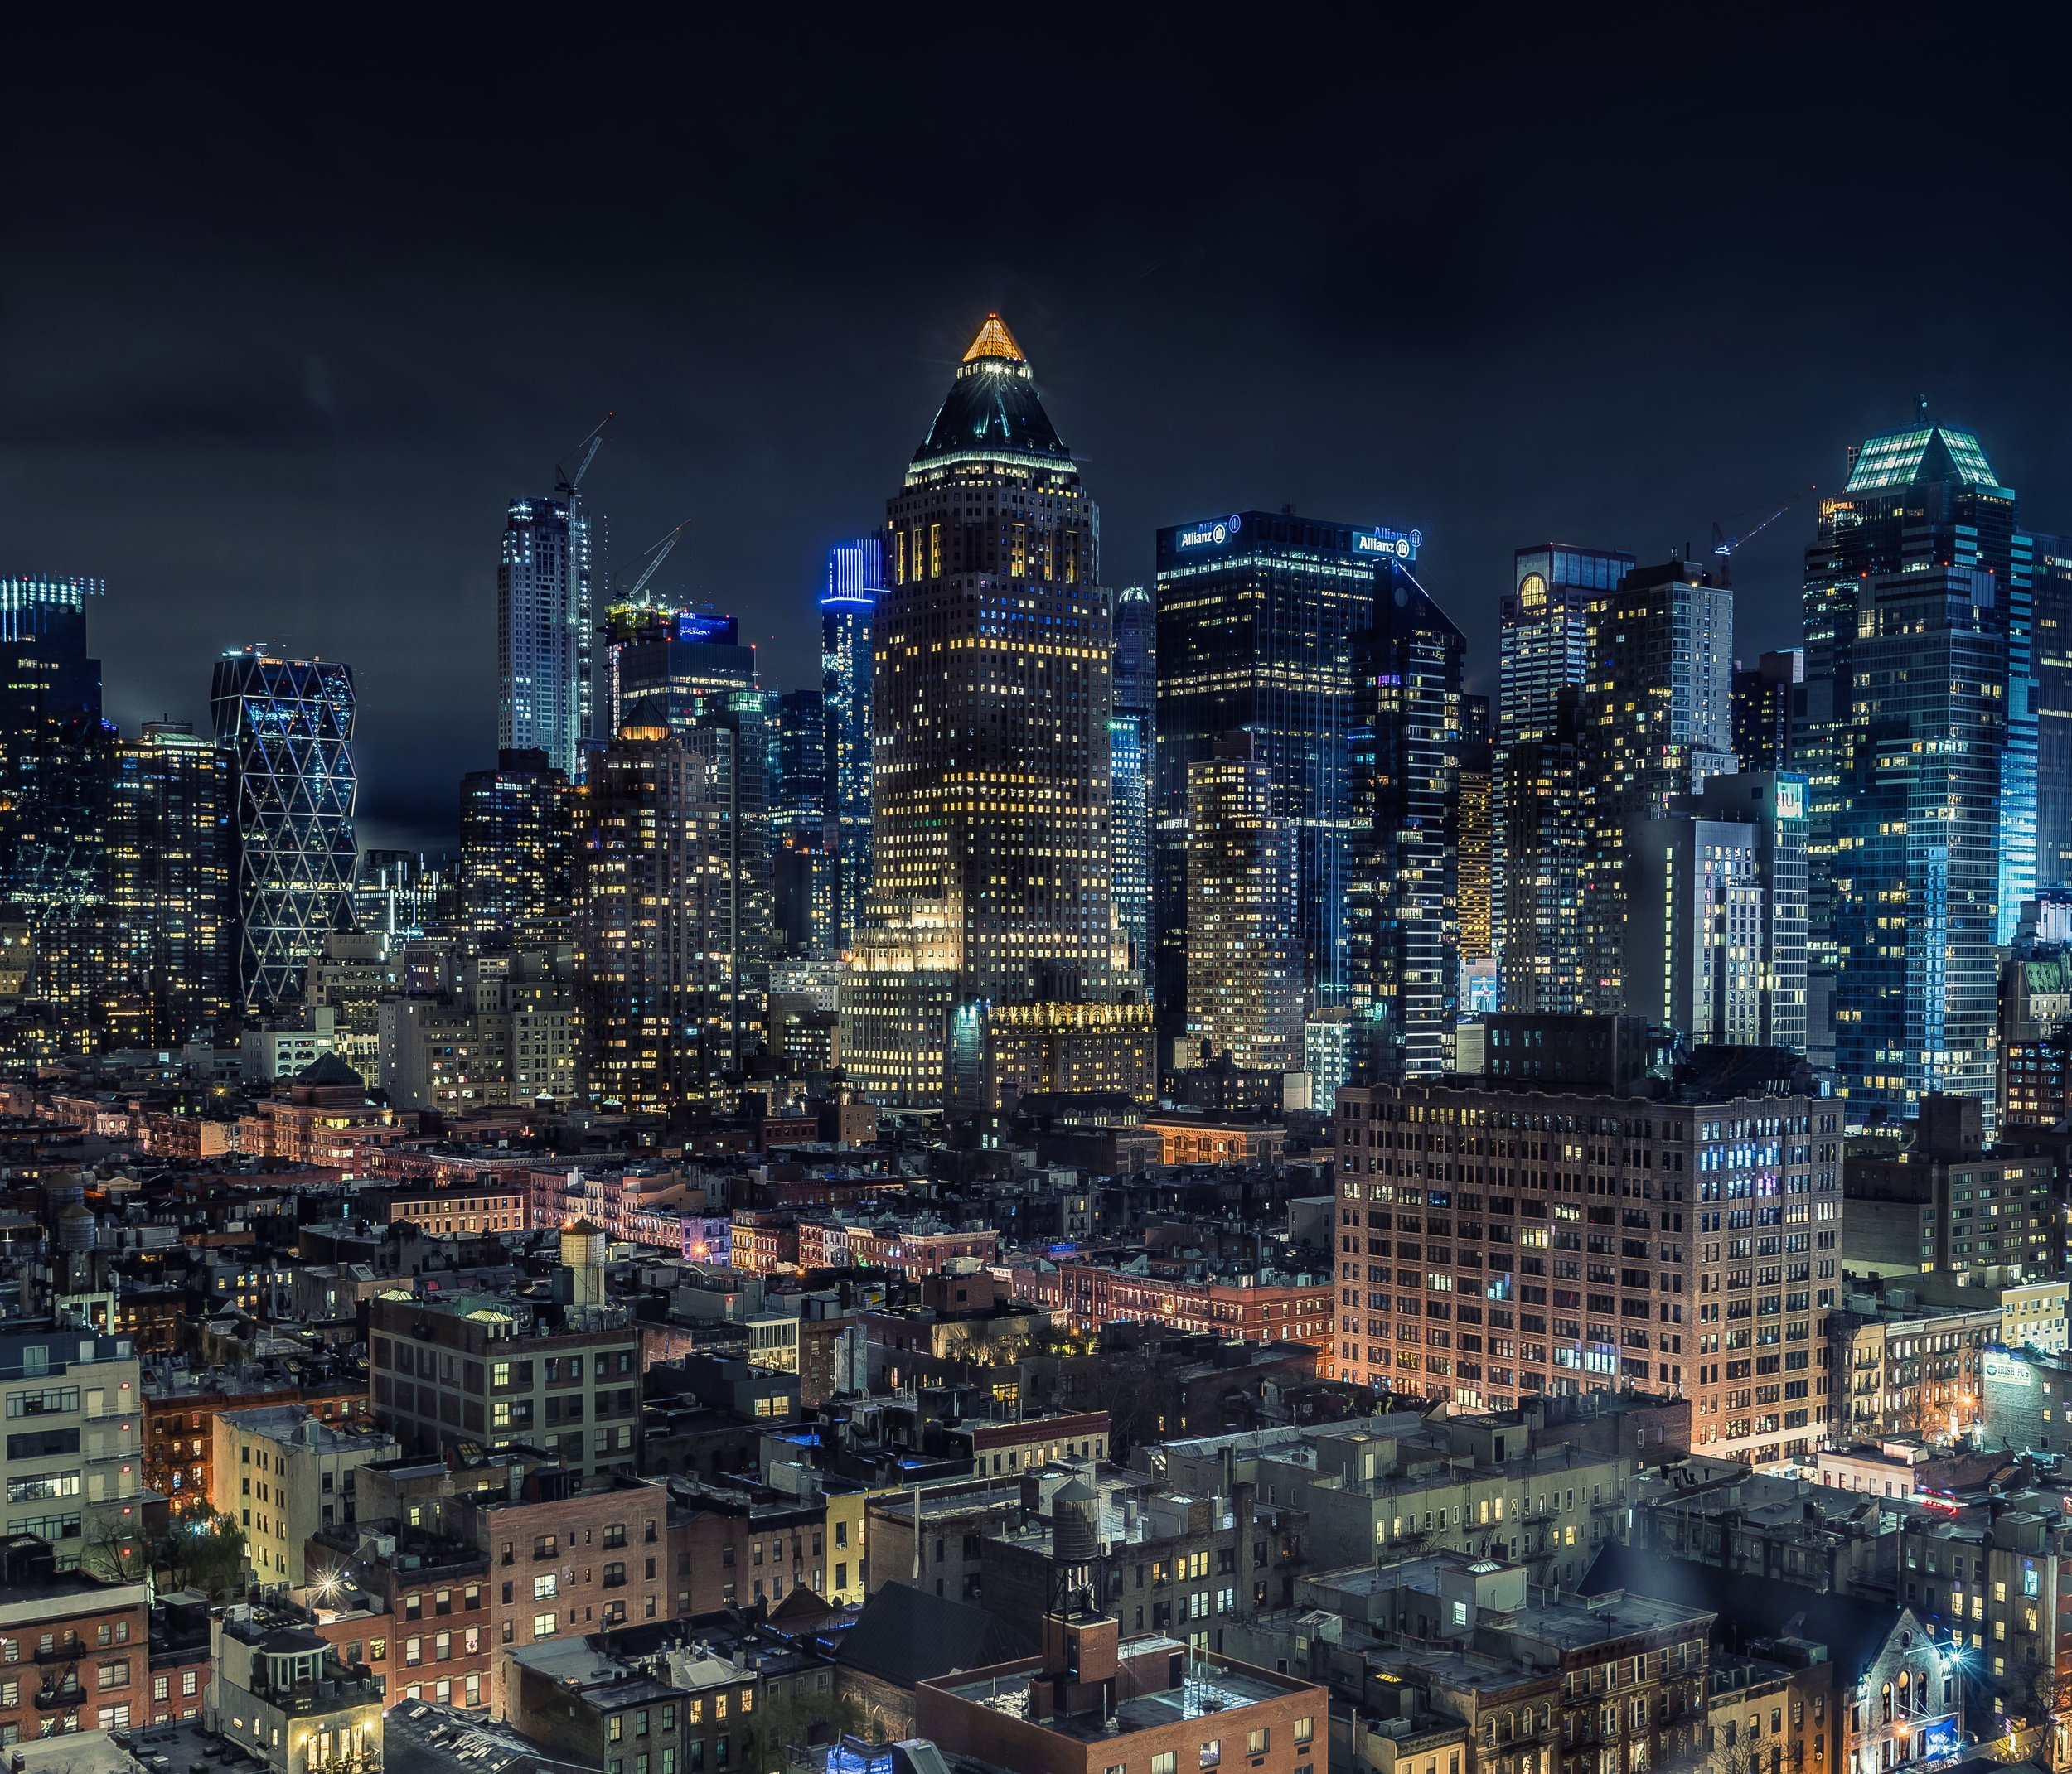 Midtown New York City View (click the image to view full size)